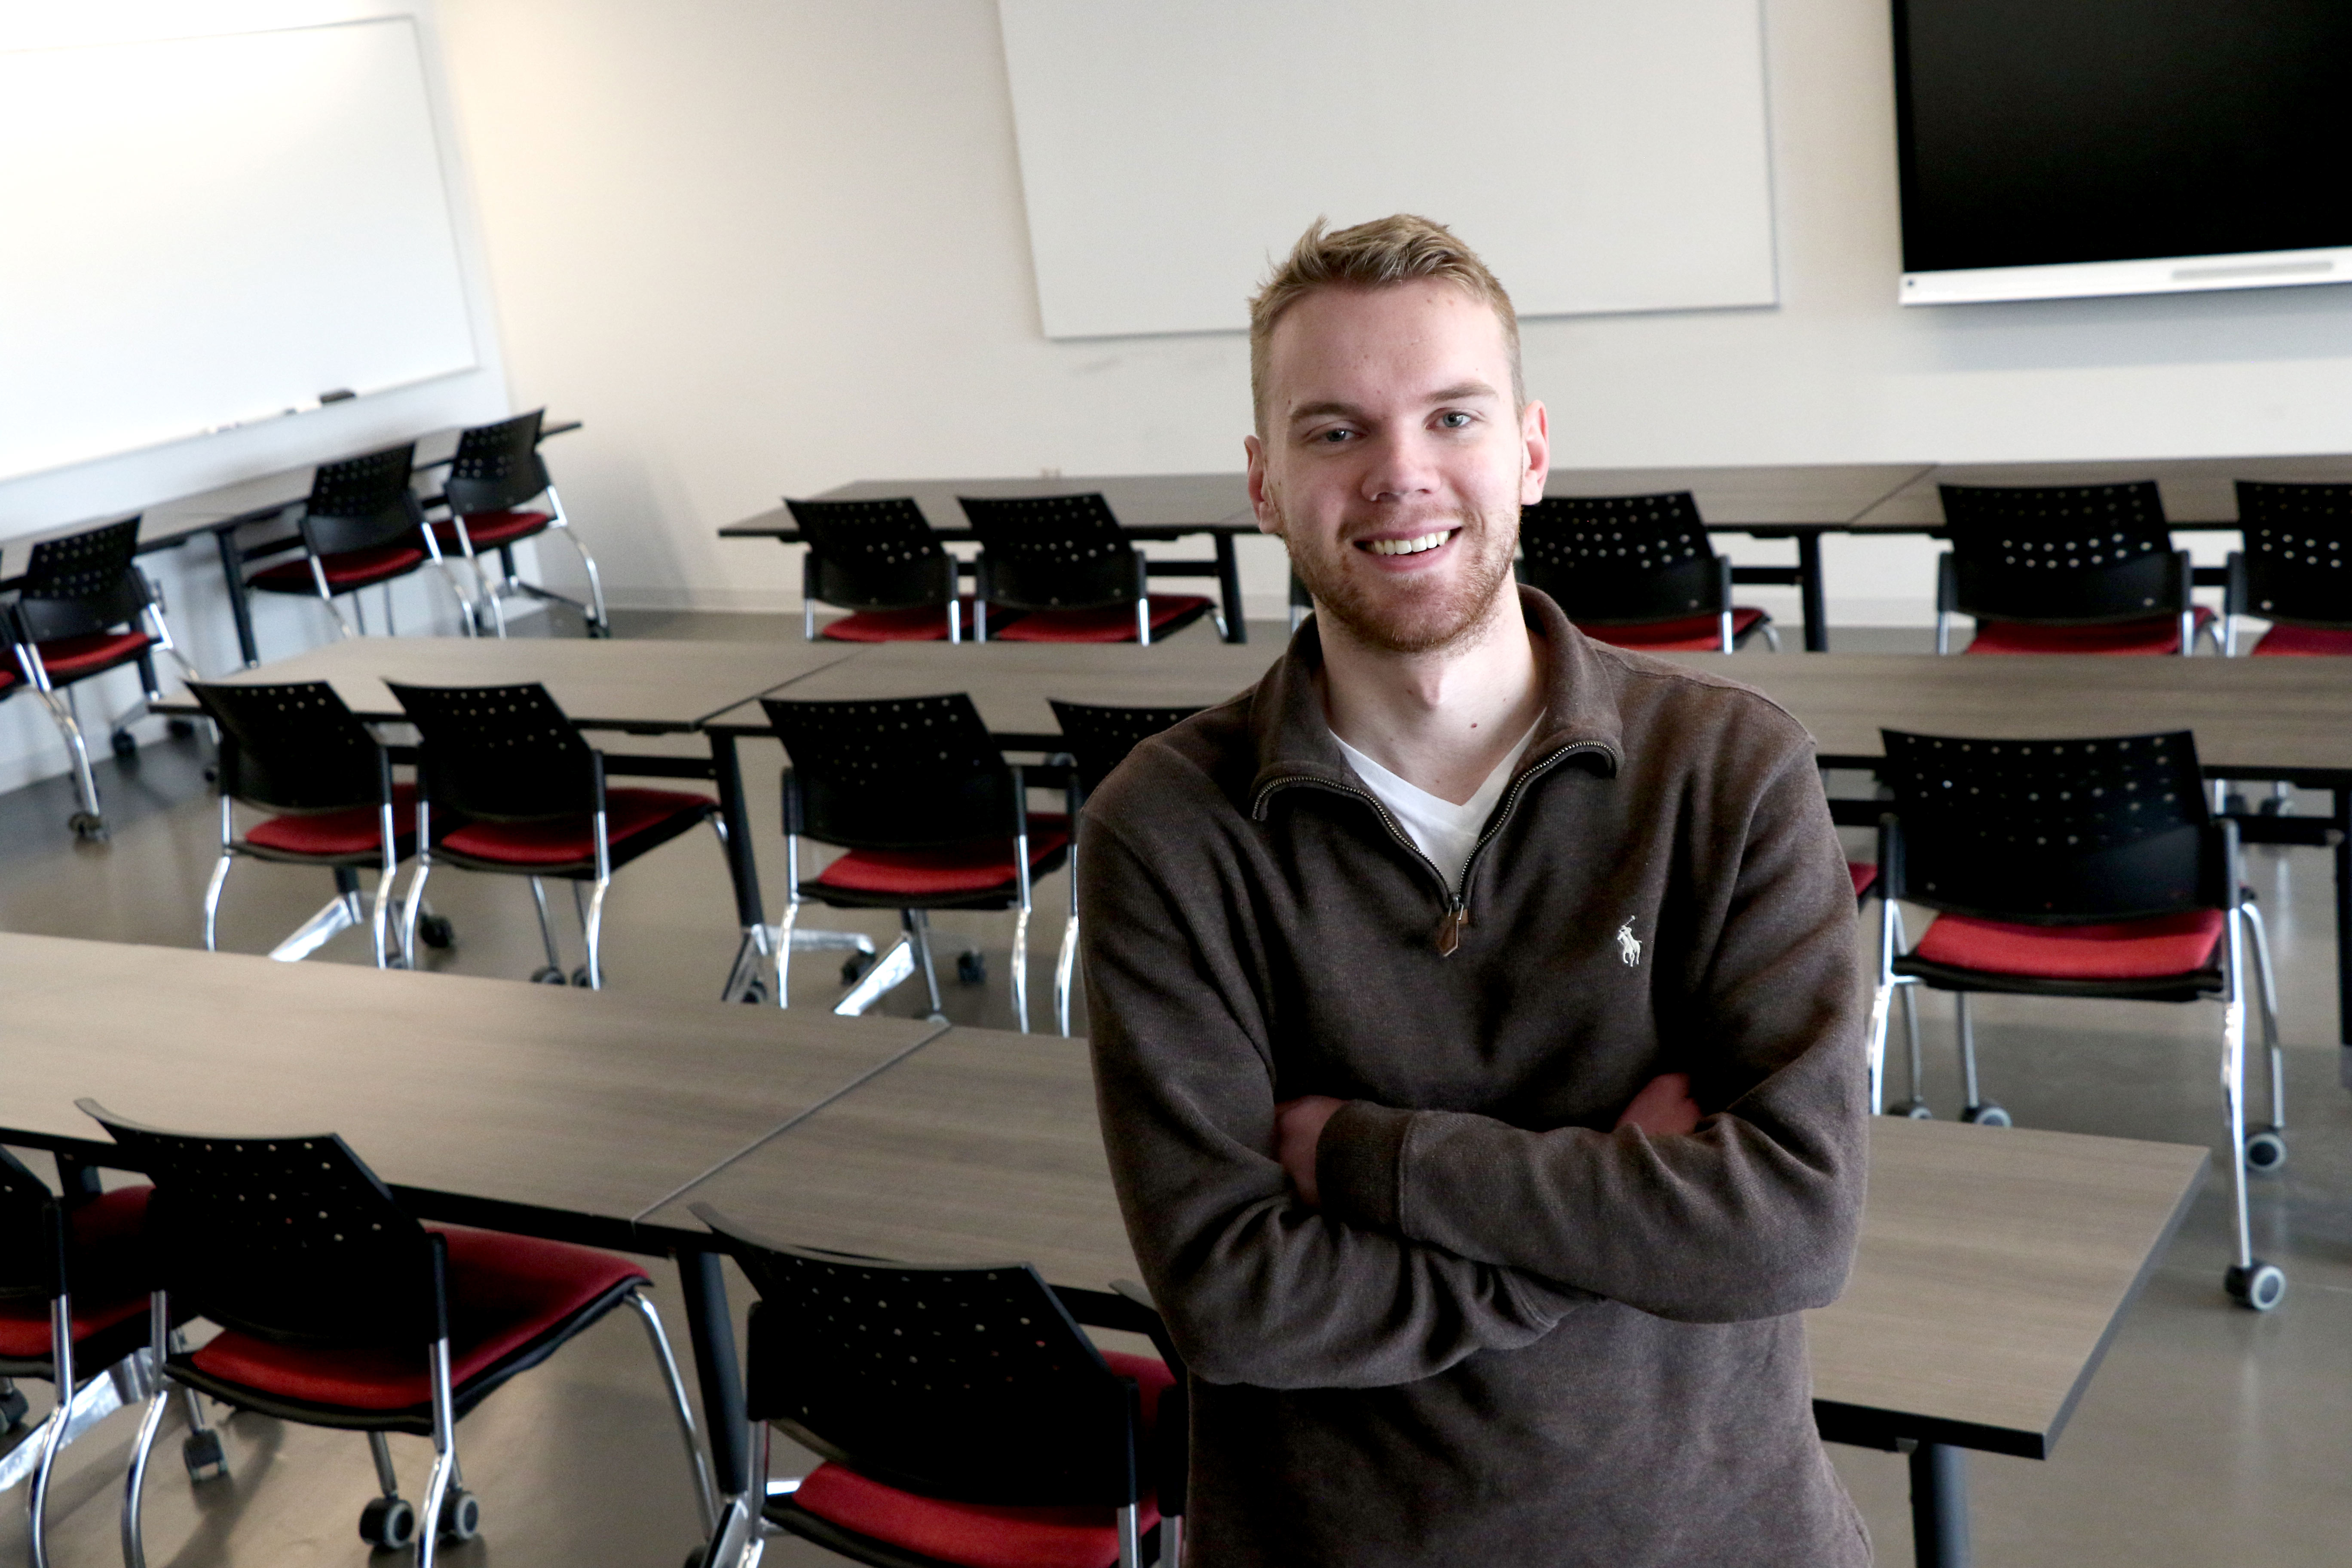 Philosophy student Drake Sullivan posing with arms folded, smiling, in student centre classroom